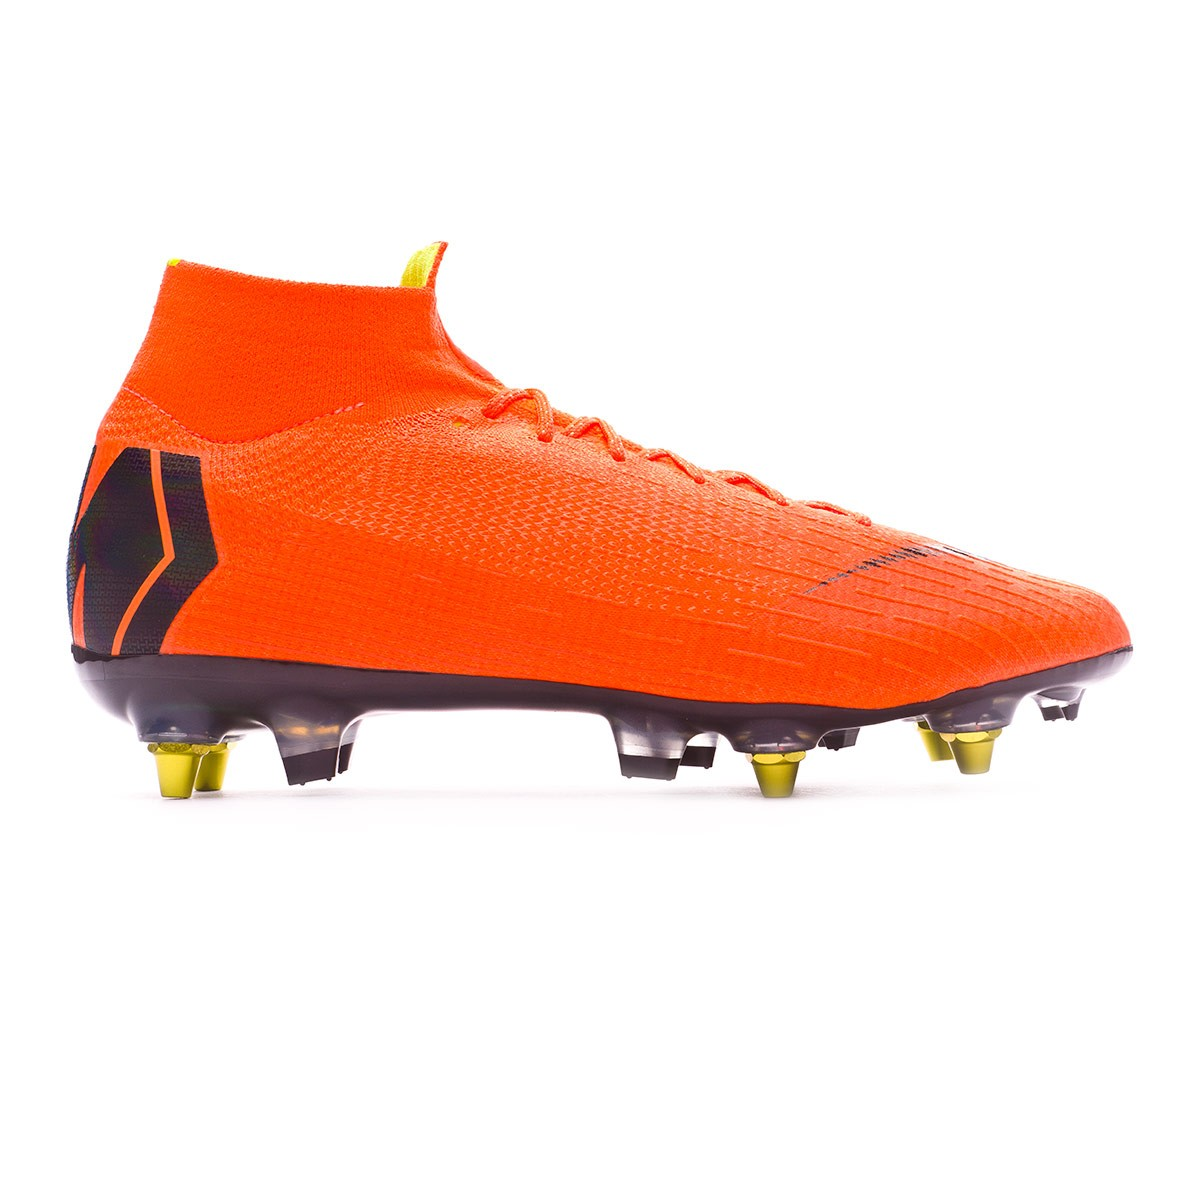 huge discount 472c2 59af0 Chaussure de foot Nike Mercurial Superfly VI Elite SG-Pro Anti-Clog Total  orange-Black-Volt - Boutique de football Fútbol Emotion